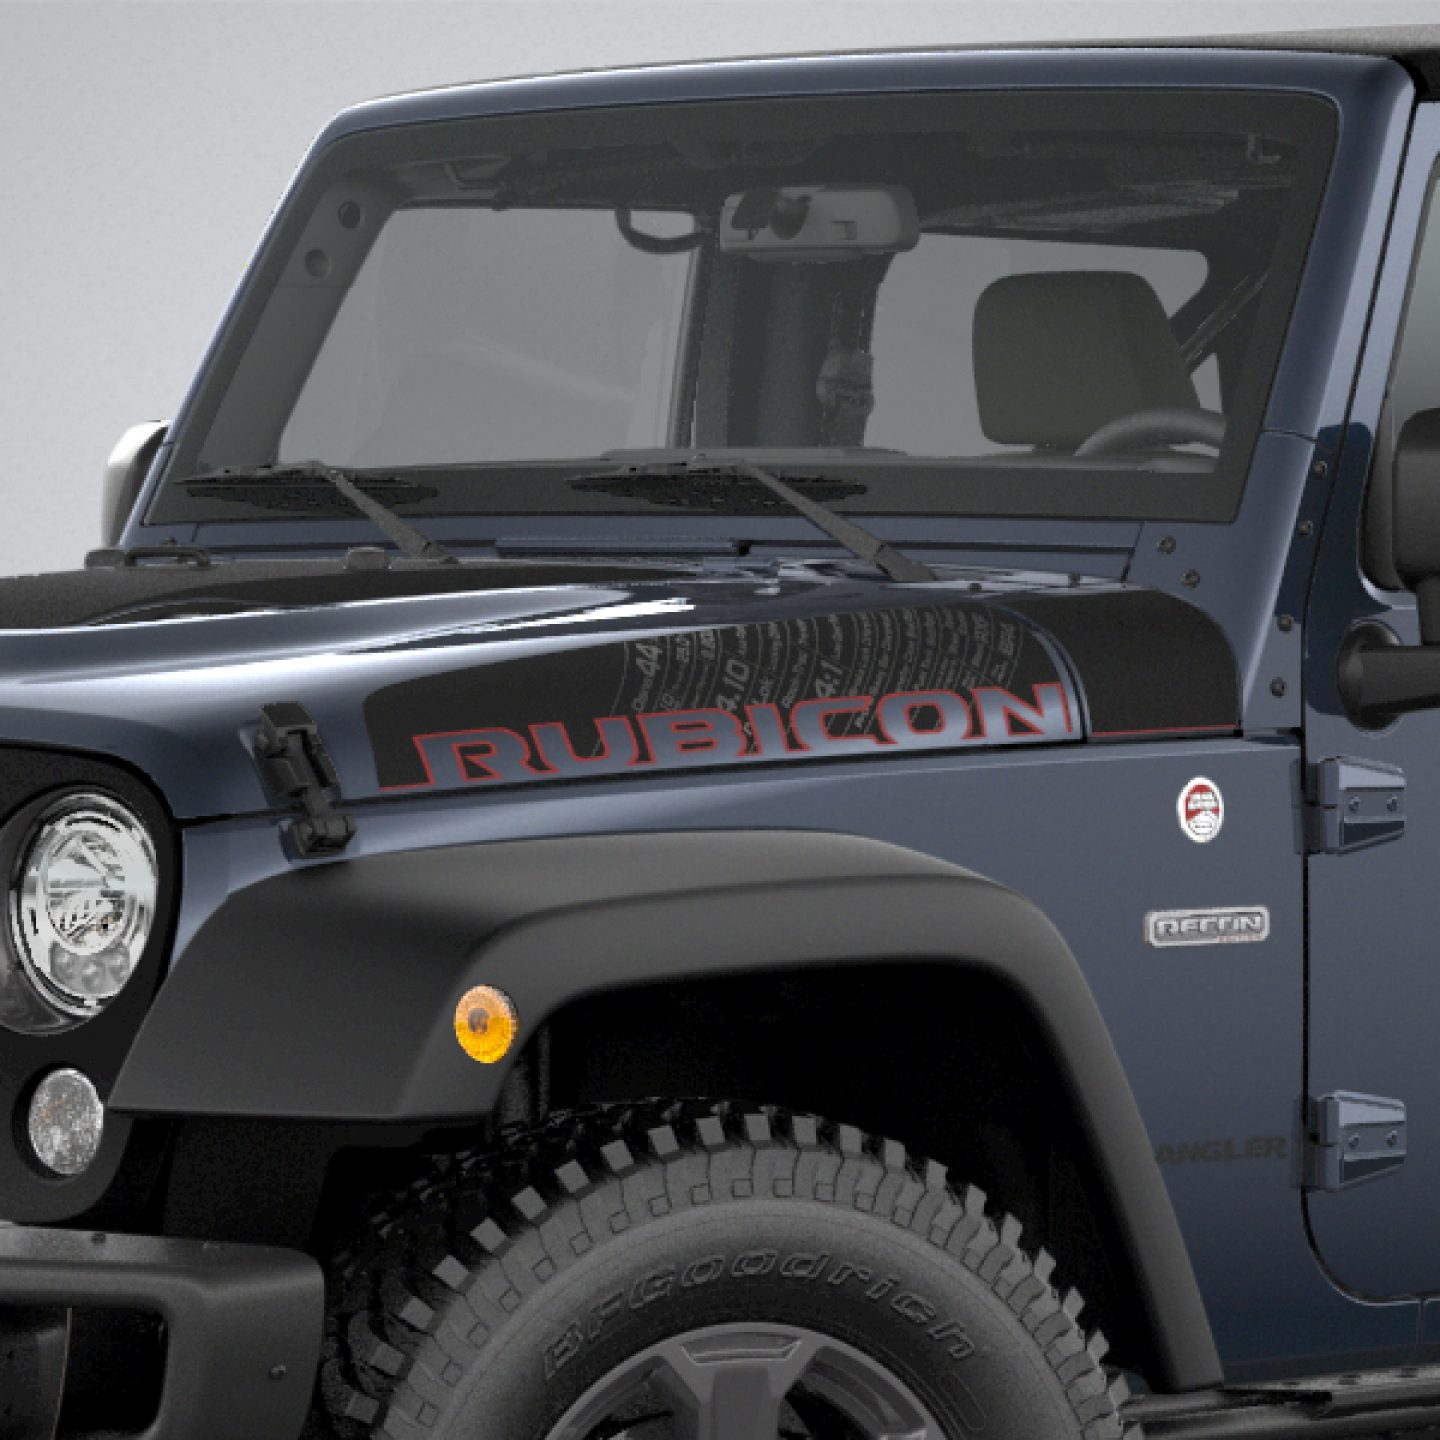 2017-Jeep-Wrangler-Rubicon-Recon-VLP-Exterior-Feature-Black-Hood-Decal.jpg.image.1440.jpg